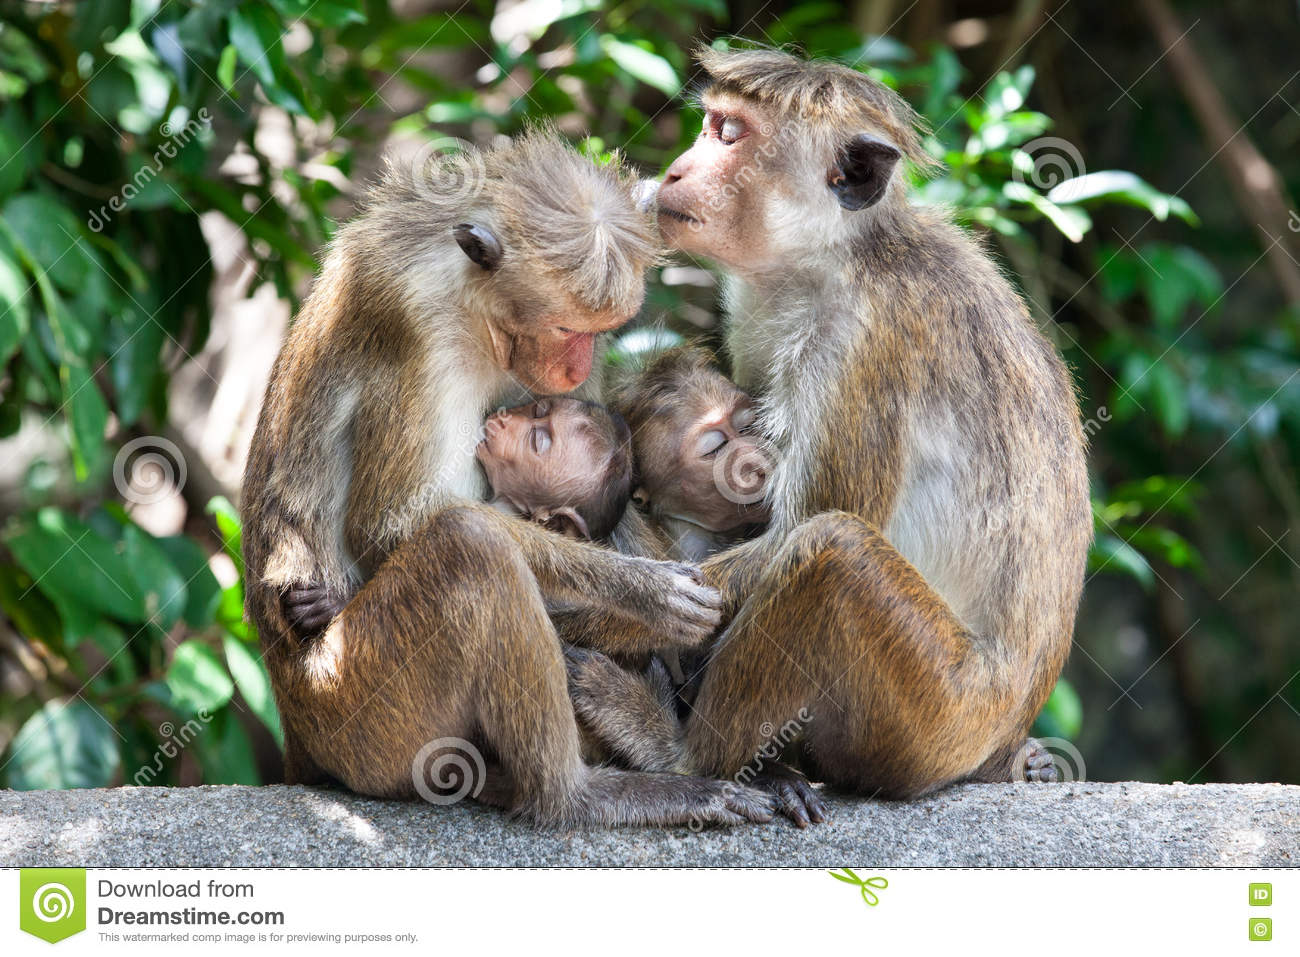 Mothers with young children Bonnet macaque monkeys